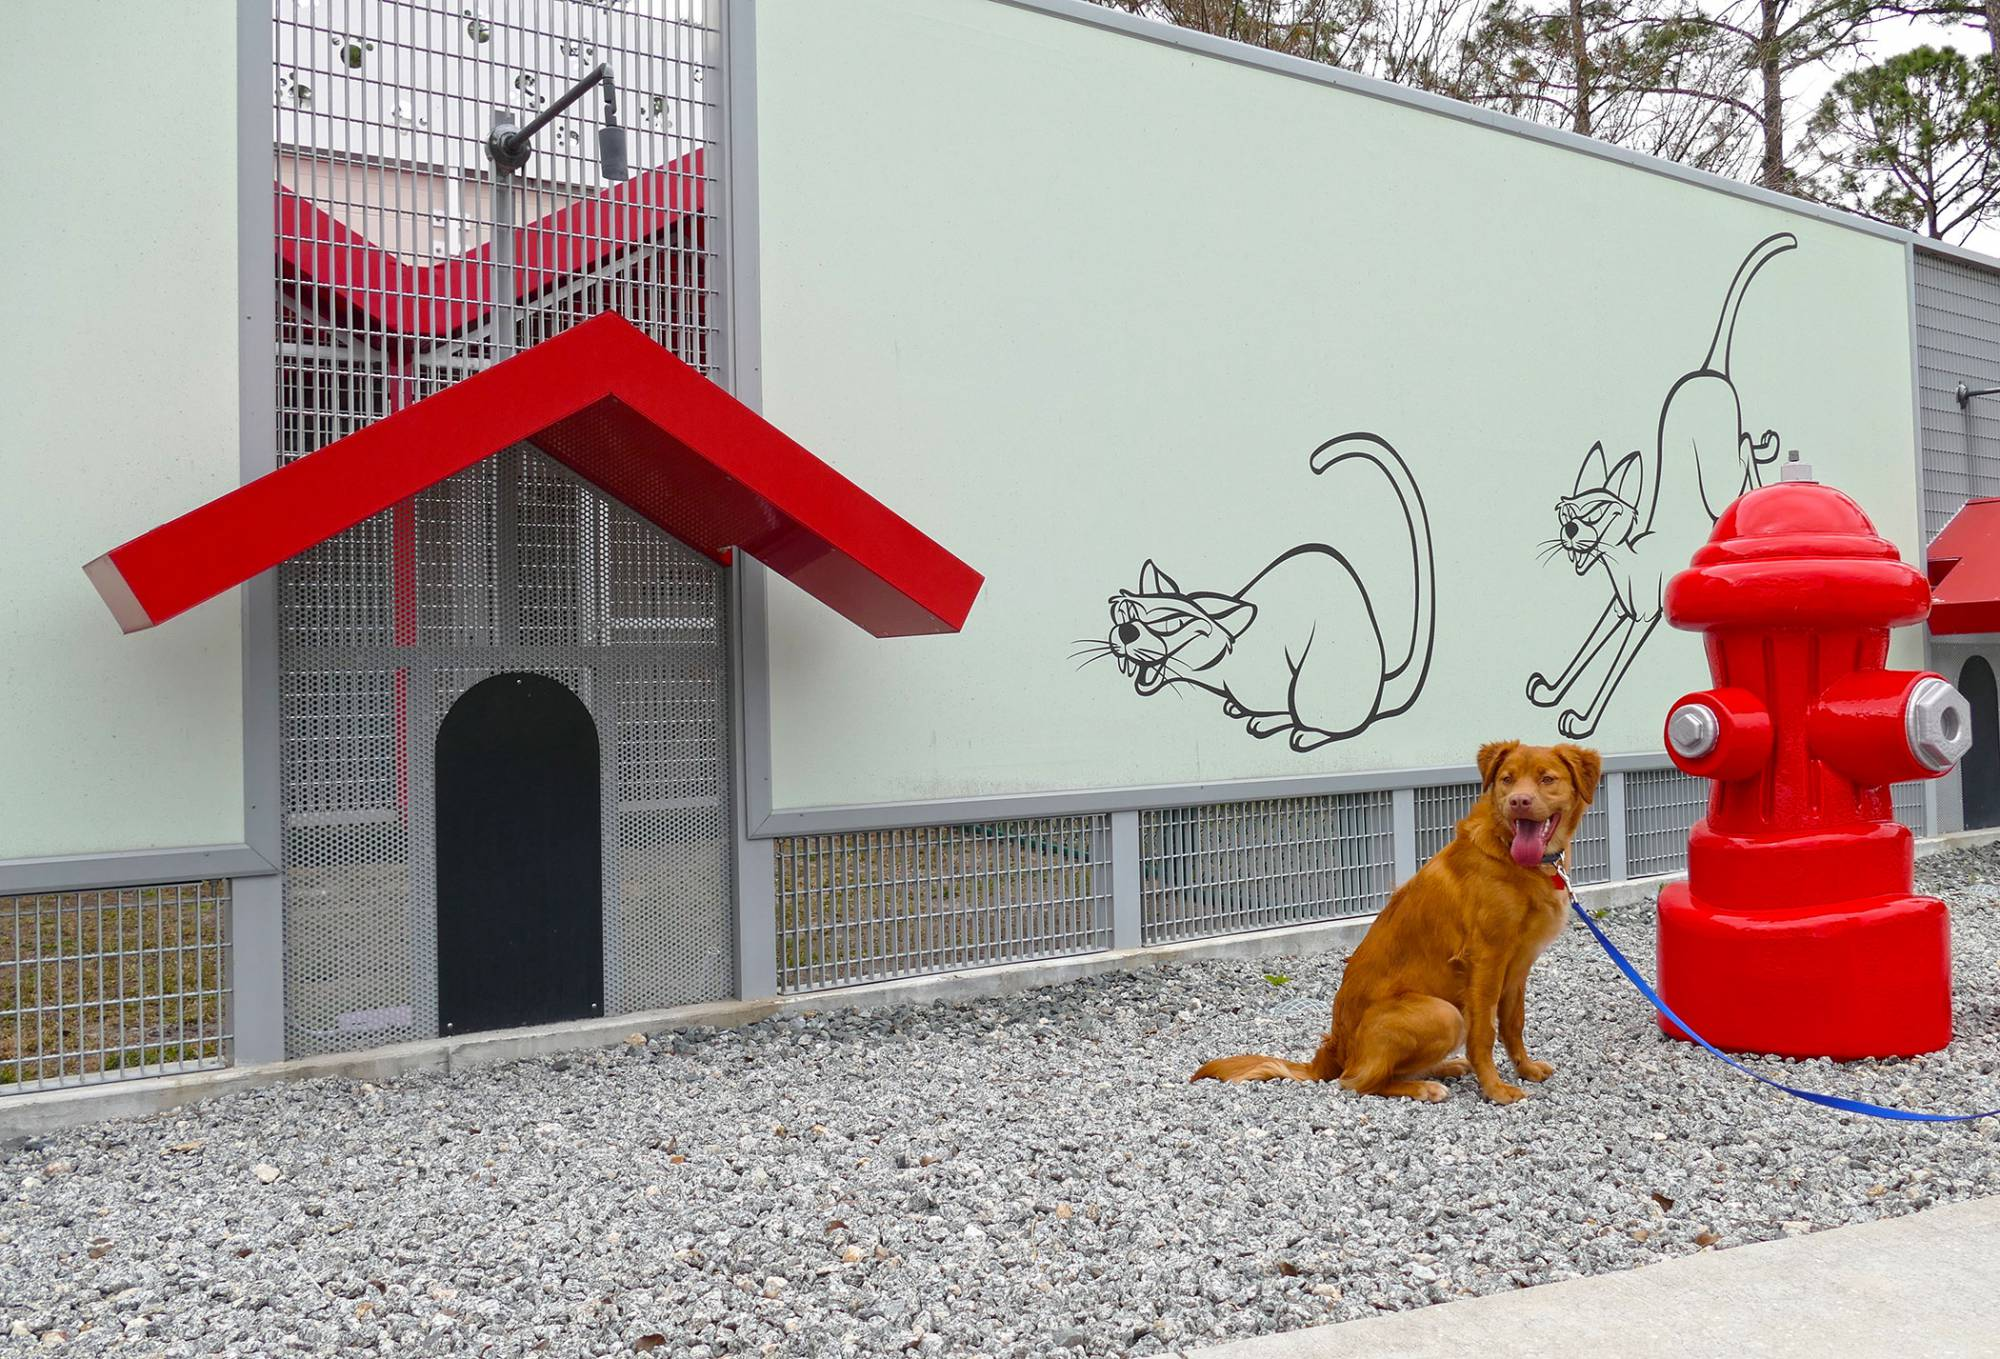 Photo Op at Best Friends Pet Care Kennel